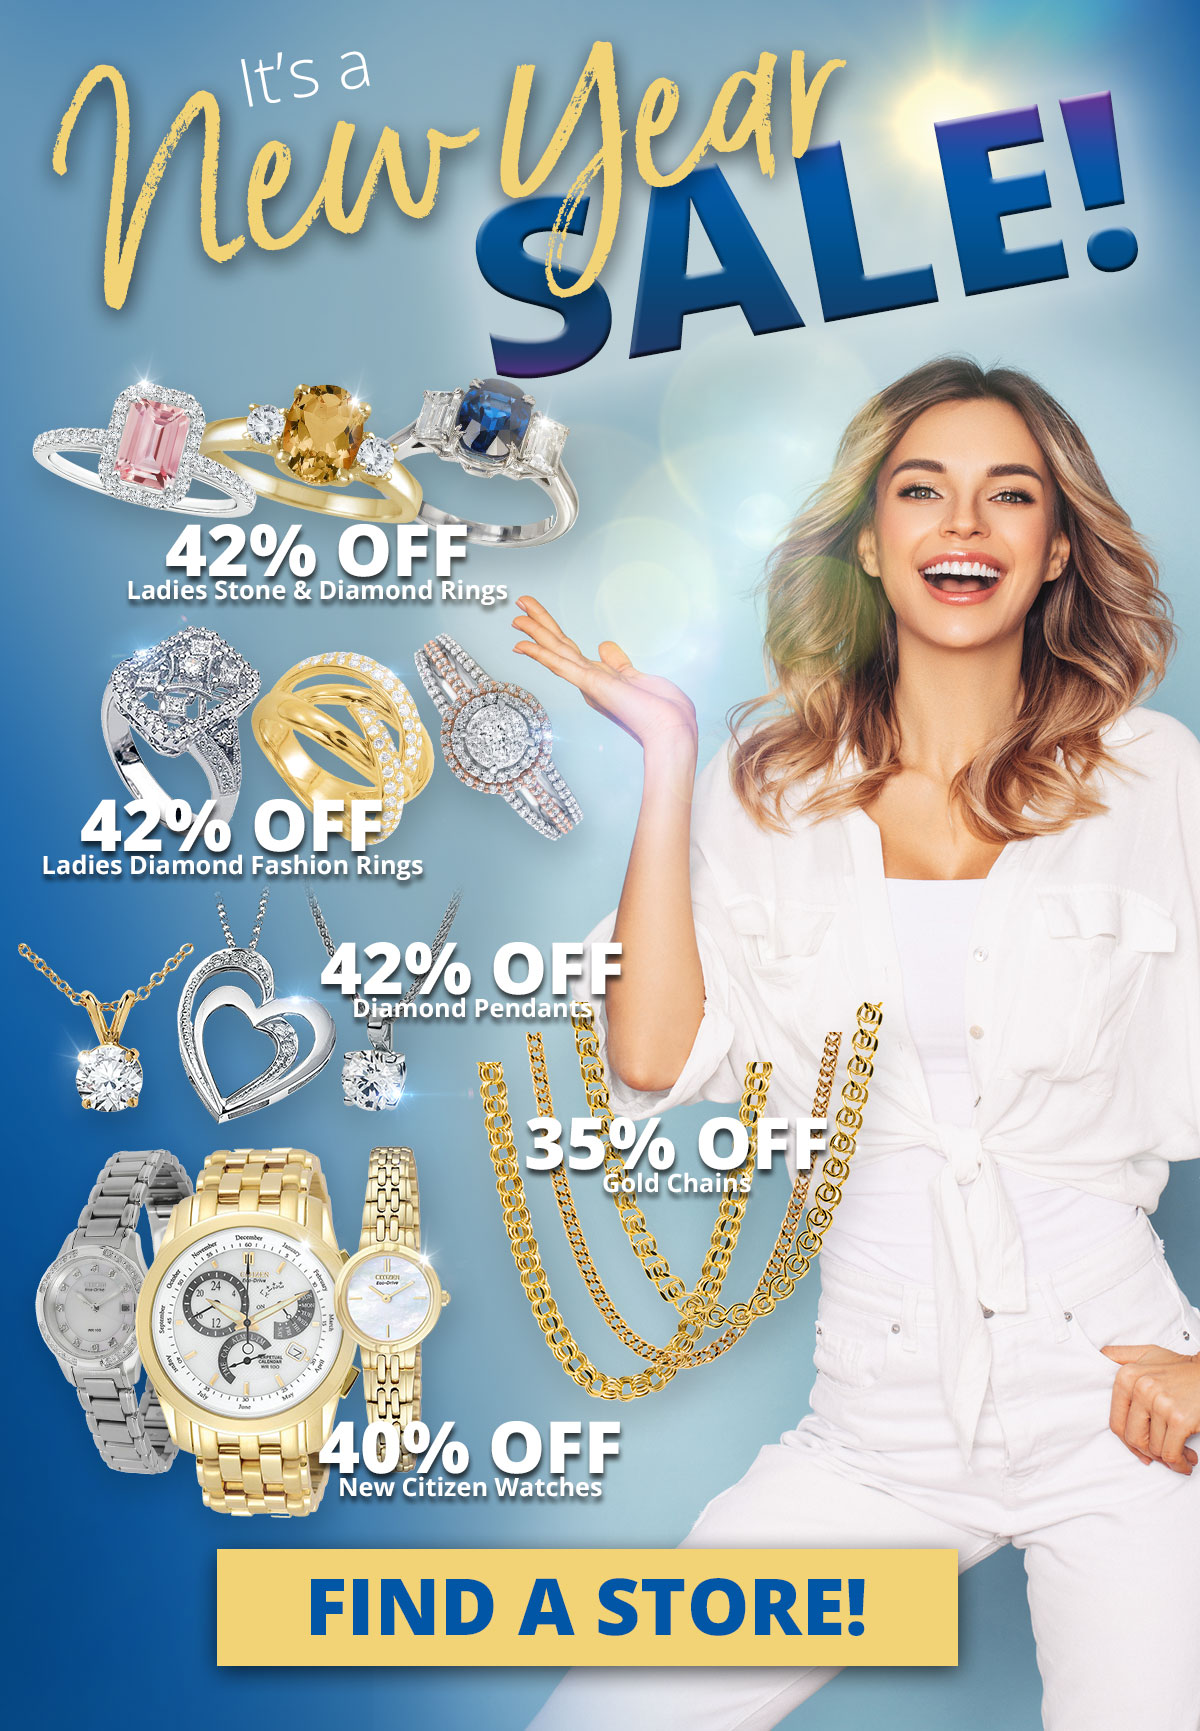 It's a New Year SALE! 42% OFF Ladies Stone & Diamond Rings 42% OFF Ladies Diamond Fashion Rings 42% OFF Diamond Pendants 35% OFF Gold Chains 40% OFF New Citizen Watches